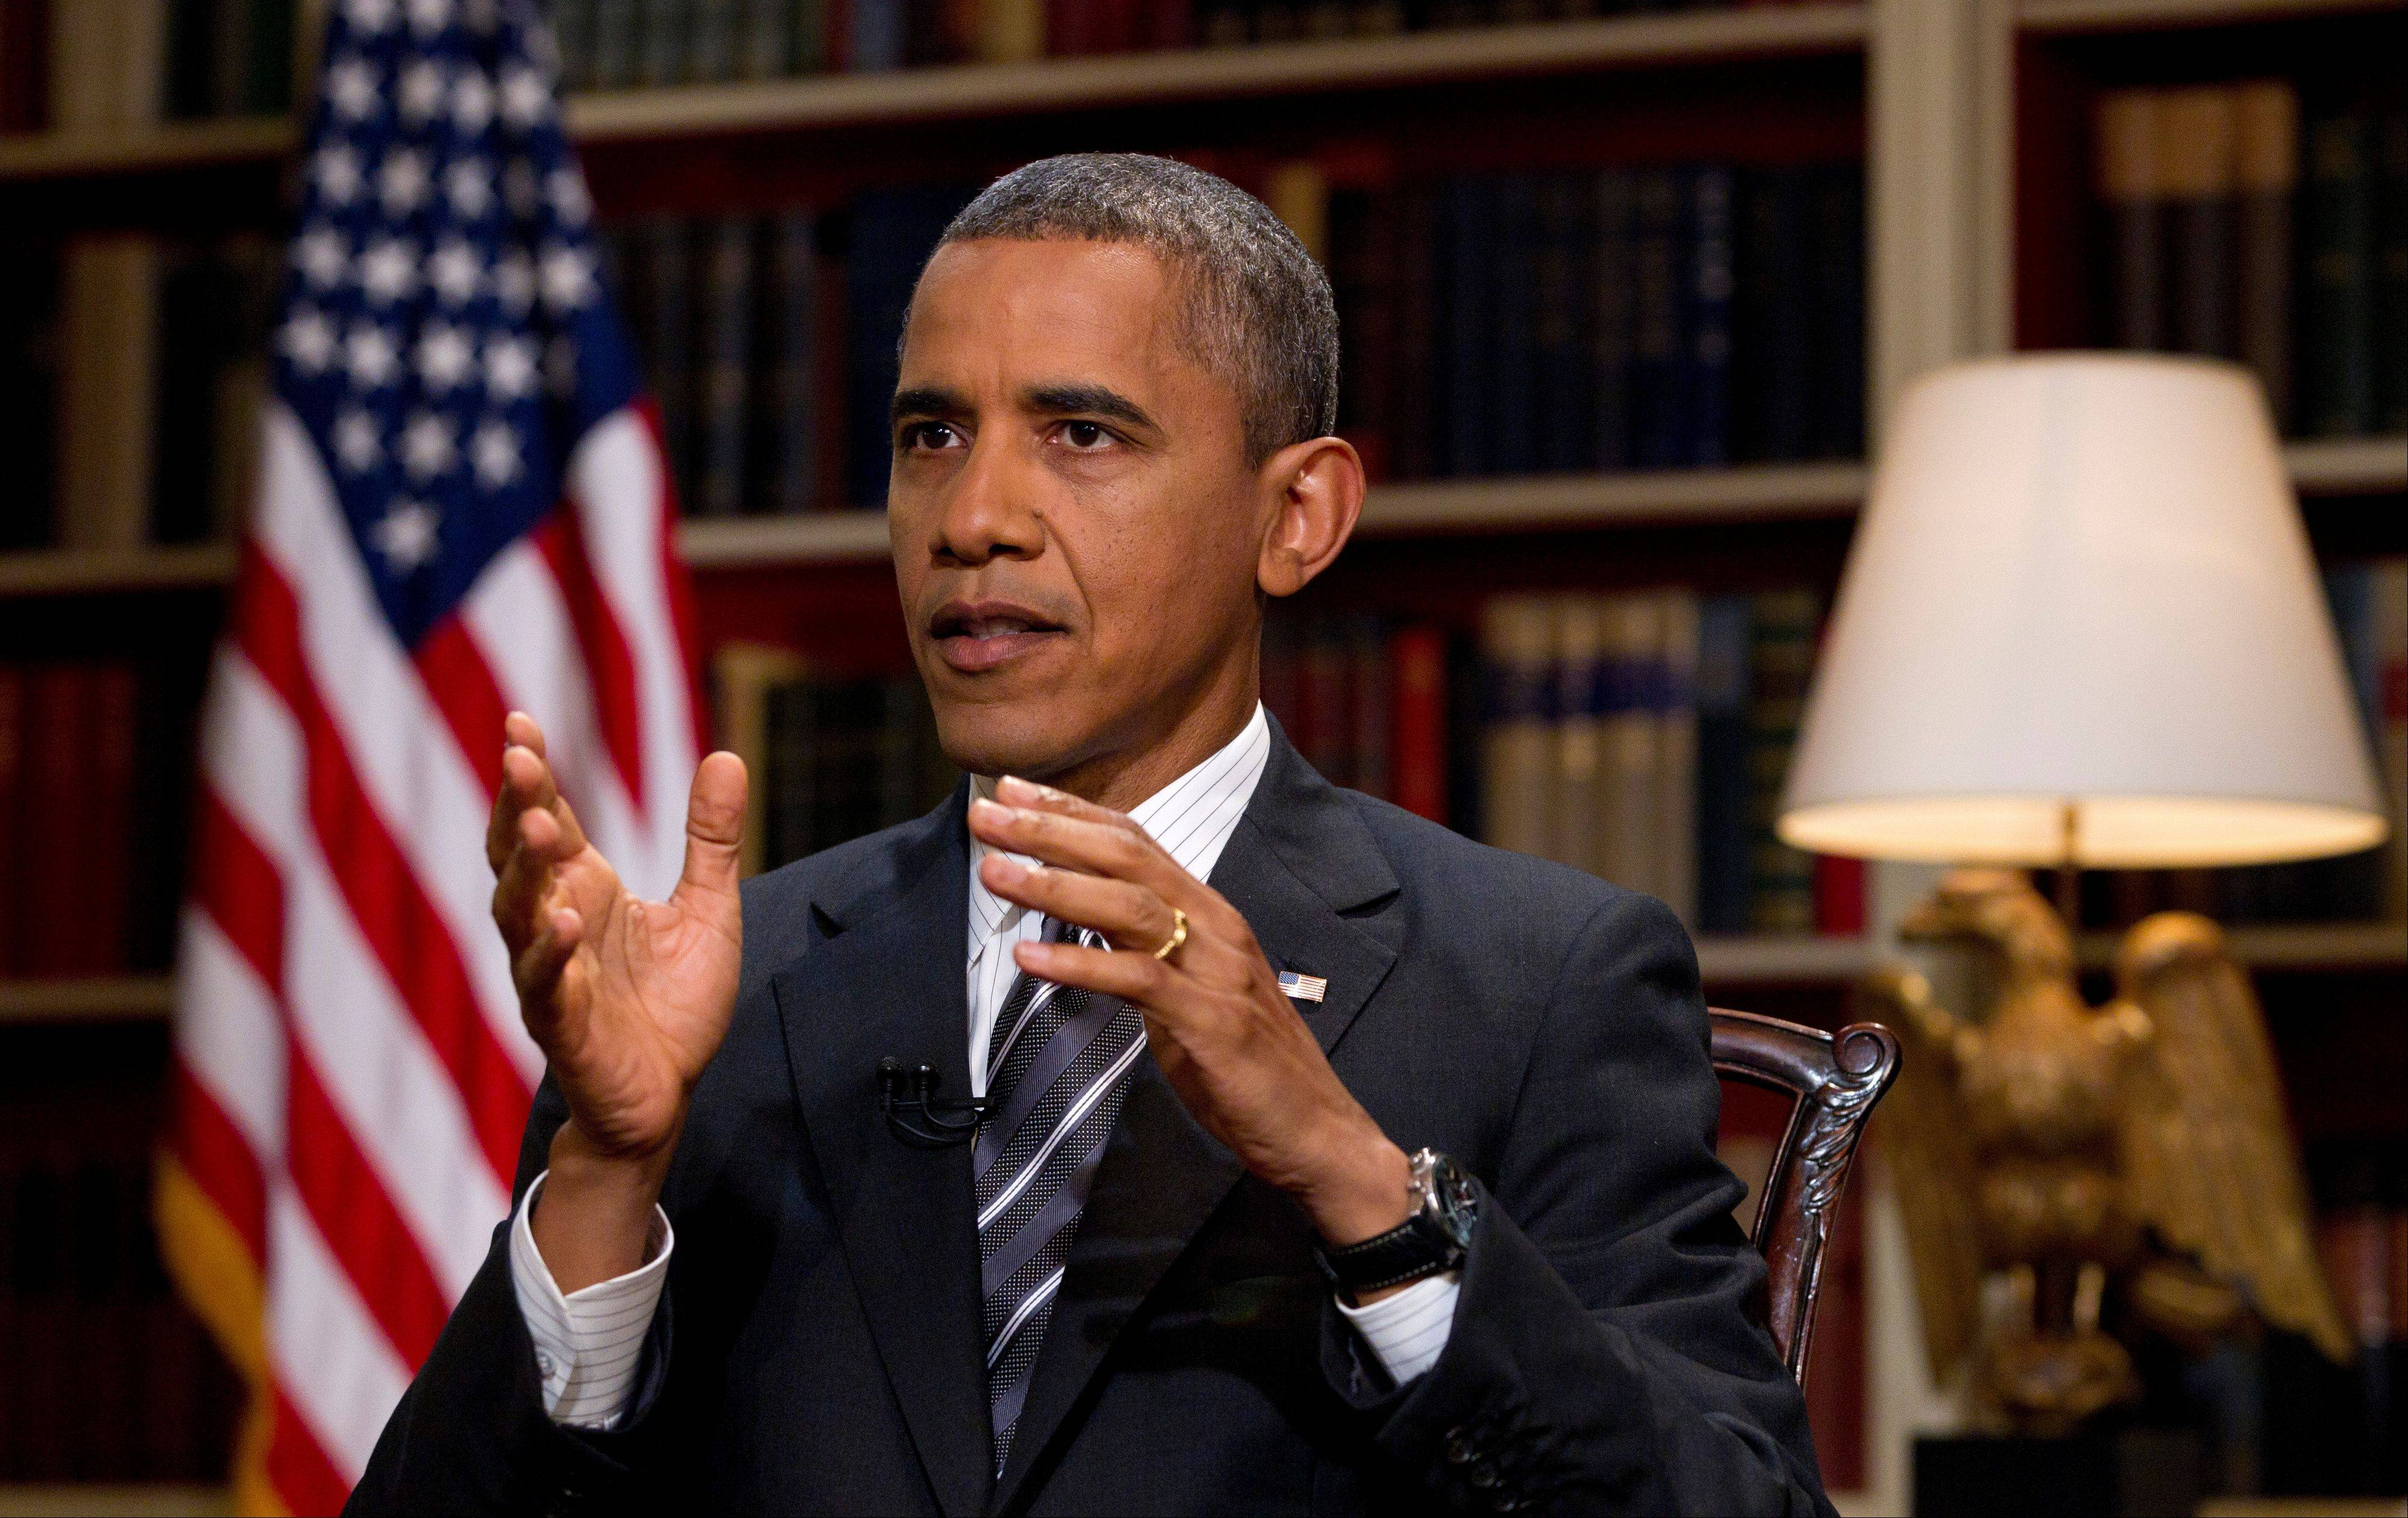 President Barack Obama speaks during an interview with The Associated Press at the White House, Thursday, Aug. 23, 2012, in Washington. Obama talked about the presidential race and Republican challenger Mitt Romney in the exclusive AP interview before heading off to a long weekend with his family at Camp David, the secluded presidential retreat in the Maryland mountains. His comments come ahead of the GOP convention opening Aug. 27, 2012, in Tampa, Fla.